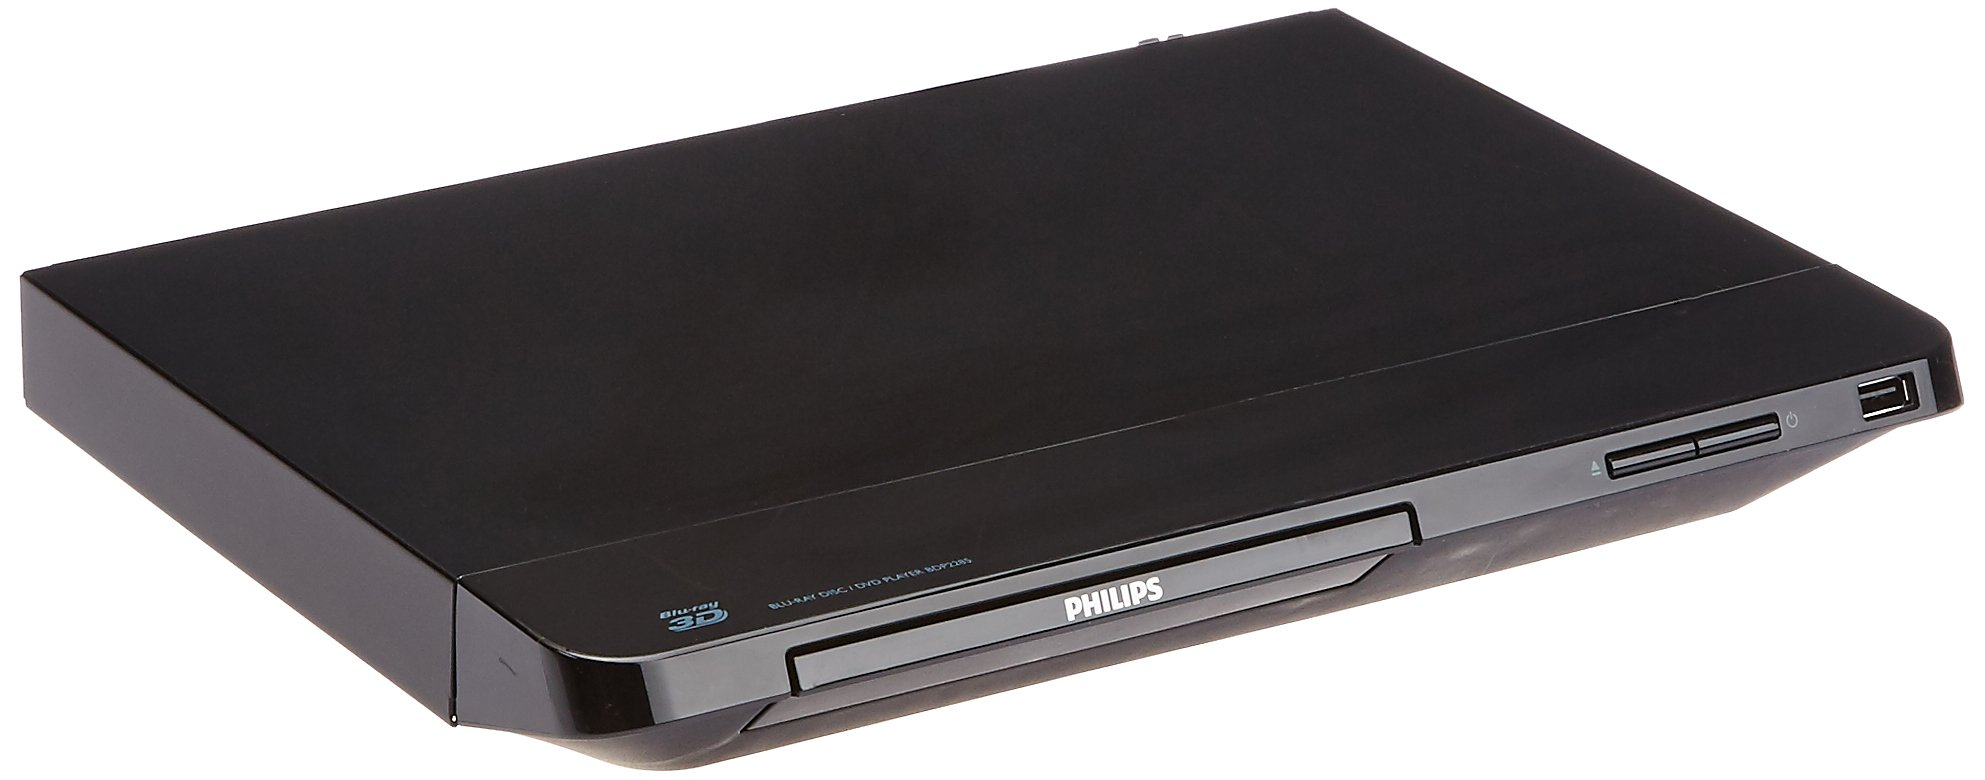 Philips BDP2285/F7B 3D Blu-Ray and DVD with Built-In Wi-Fi Refurbished (Black)